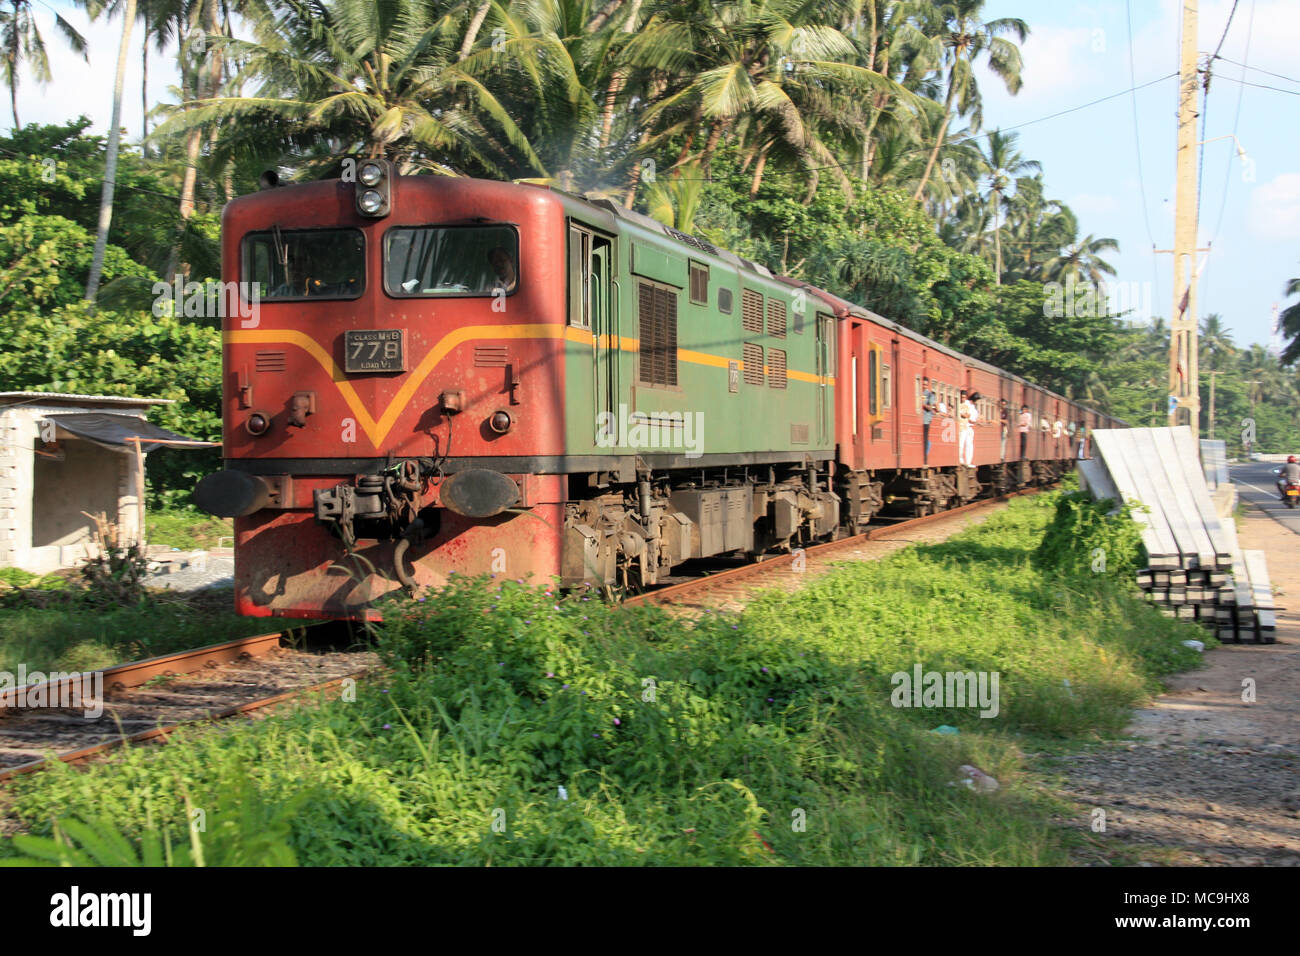 A train passing some coconut palm trees on it's way to Colombo, Sri Lanka Stock Photo